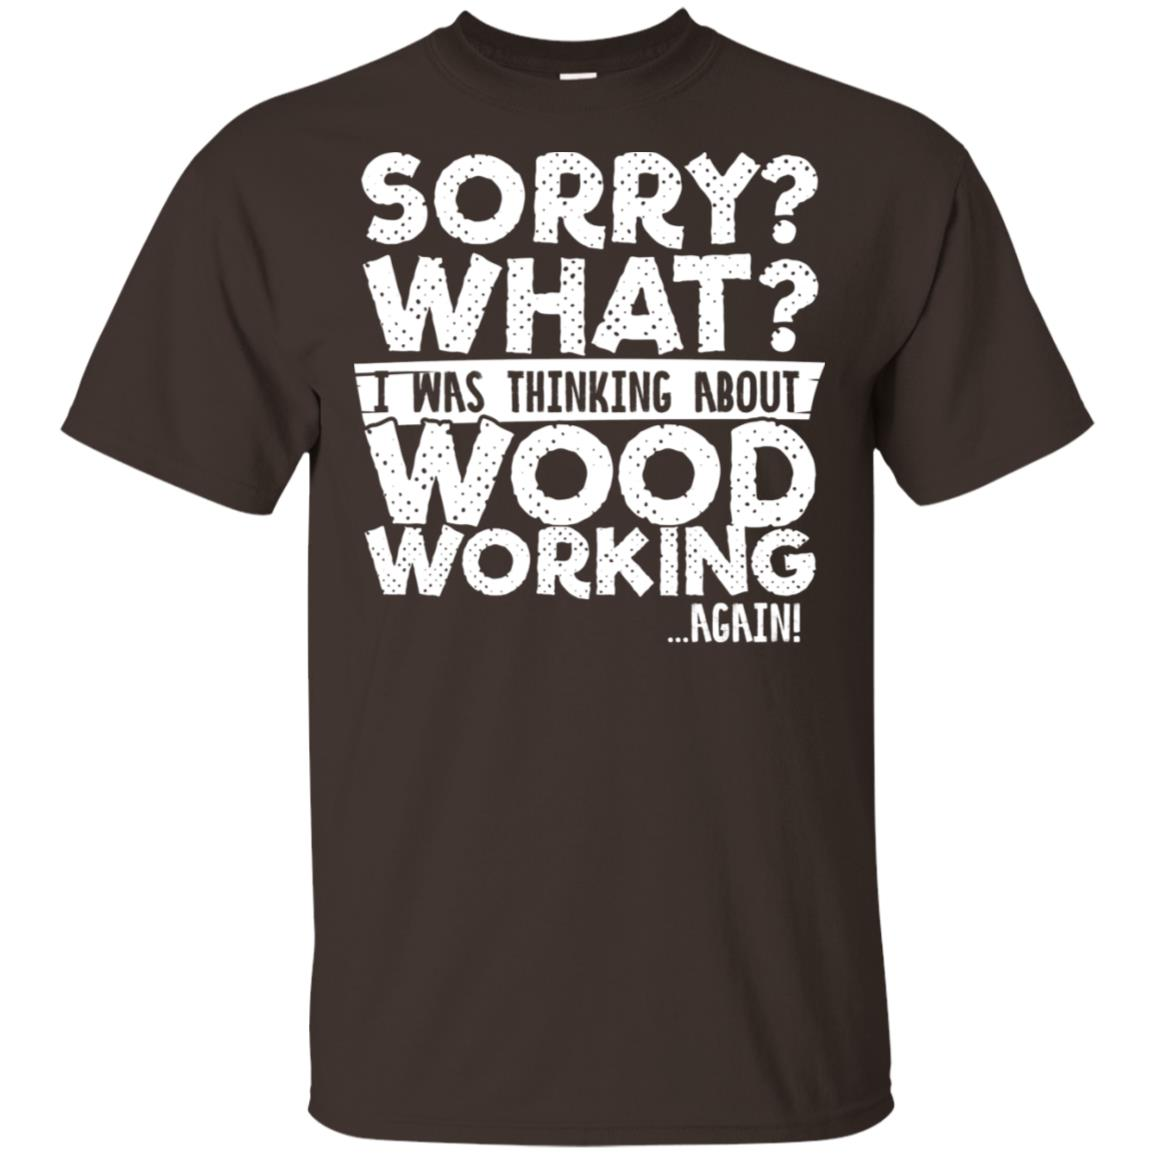 Funny Woodwork Woodworking Hobby Gift Unisex Short Sleeve